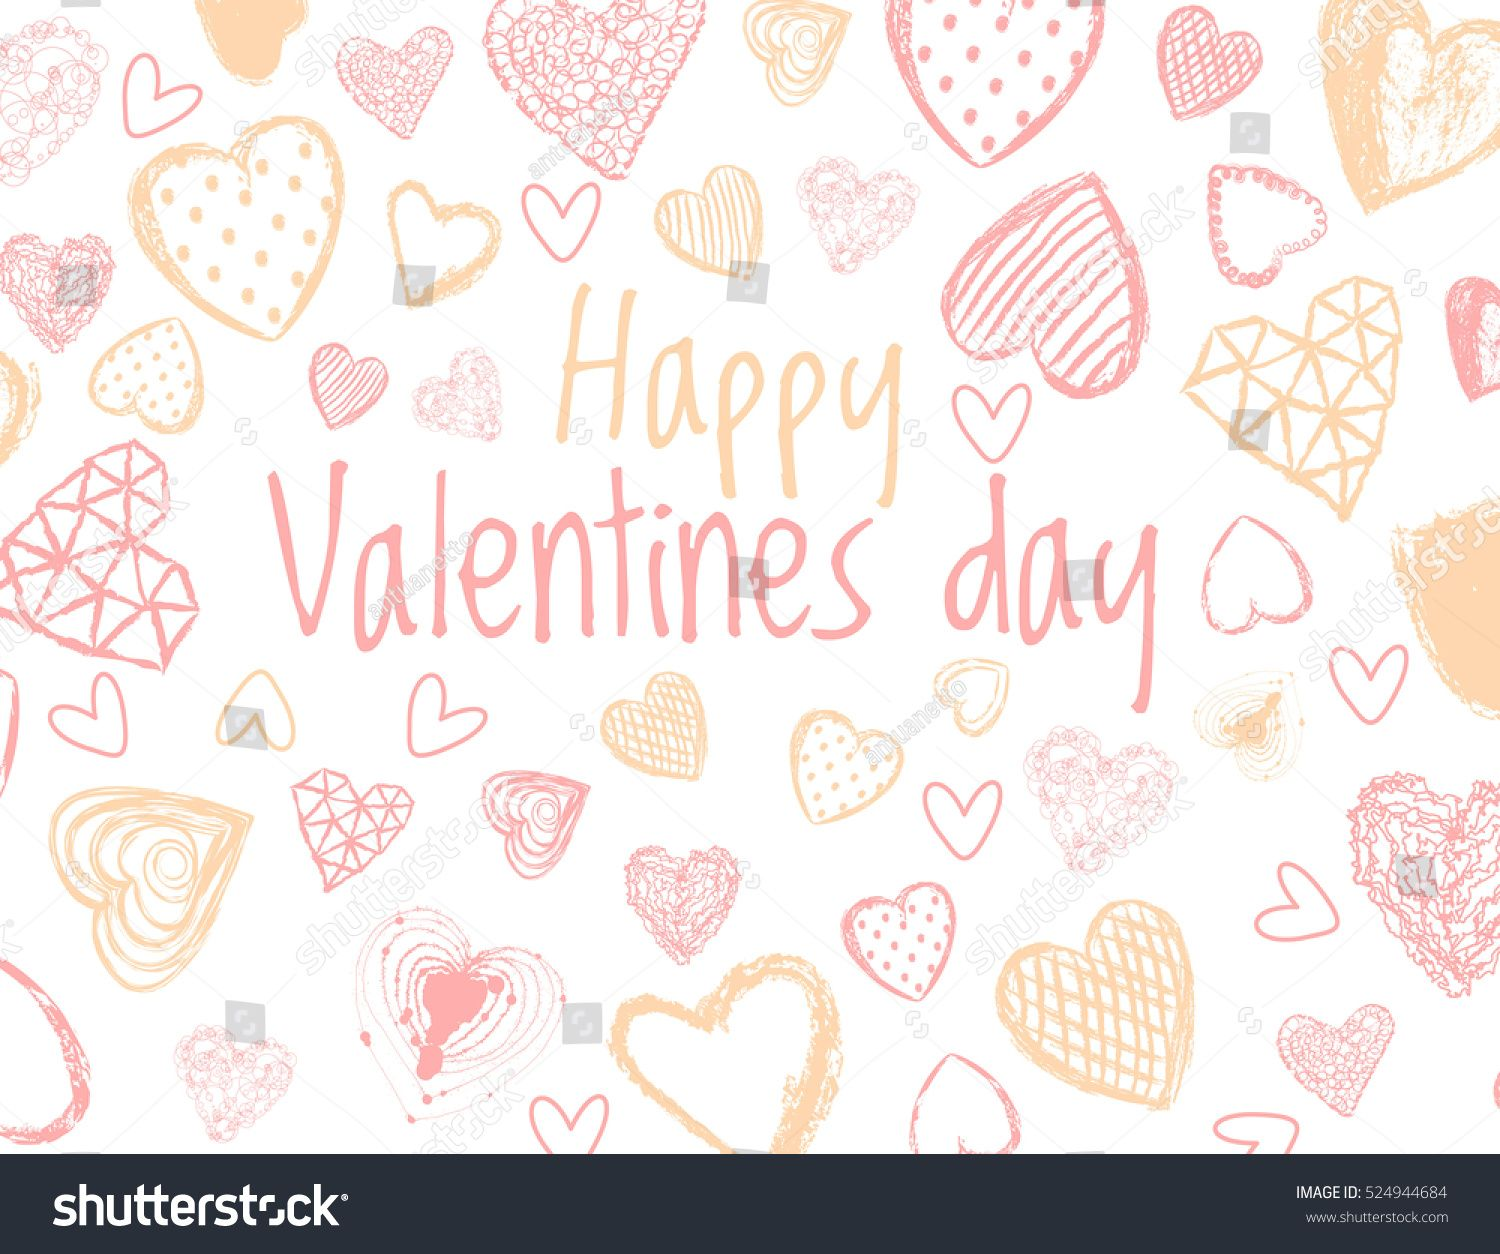 Vector Love Background With Doodle Hearts. Happy Valentines Day Quote  Background, Love, Romantic